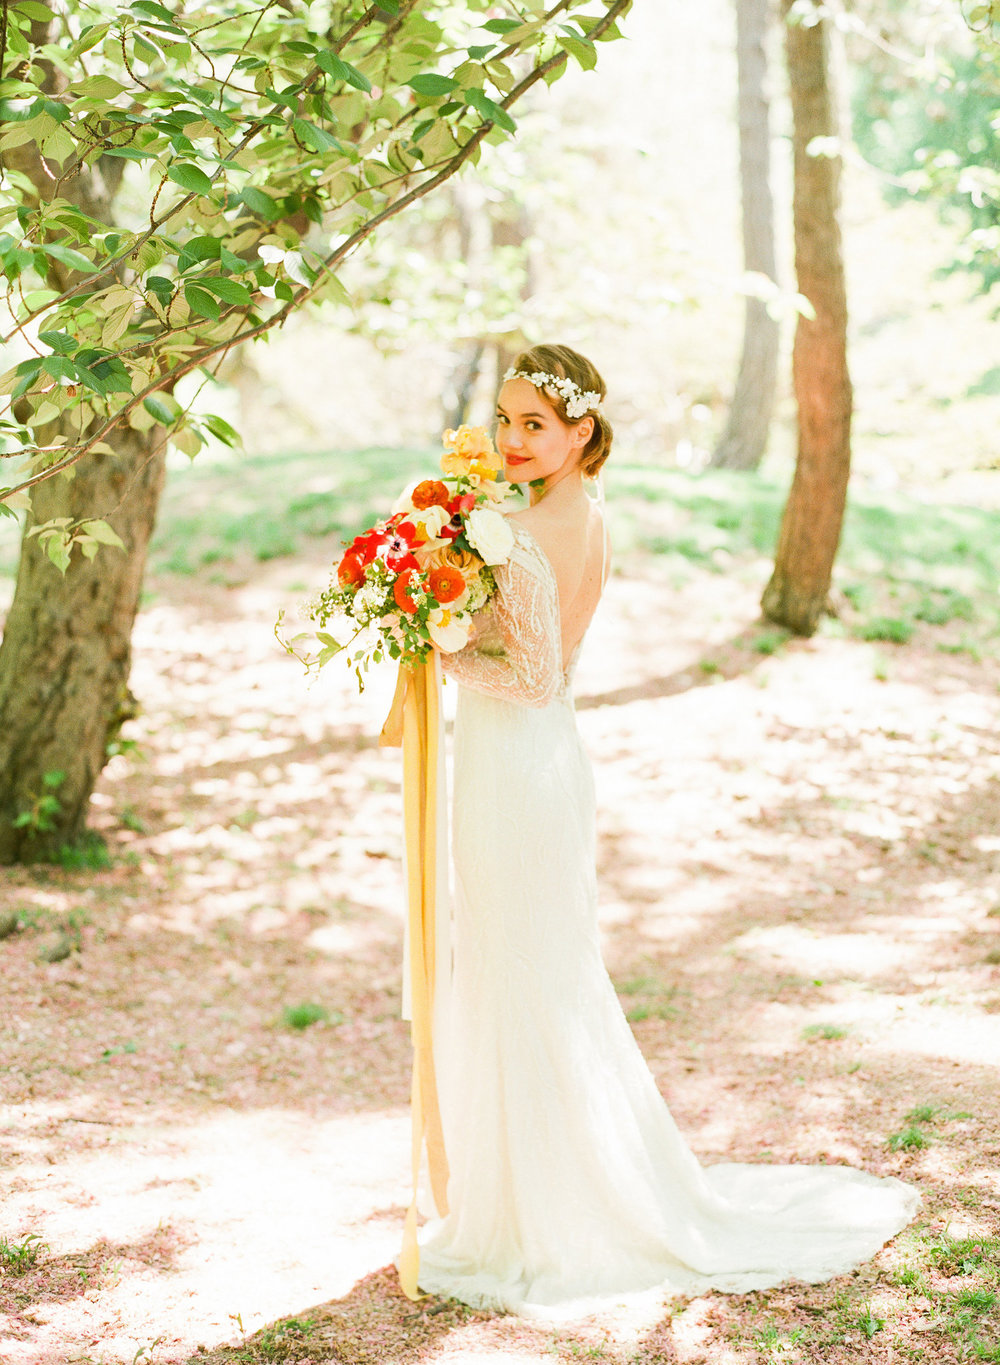 Morning Glow - Full Aperture Floral & Lindsay Madden Photography 52.jpeg